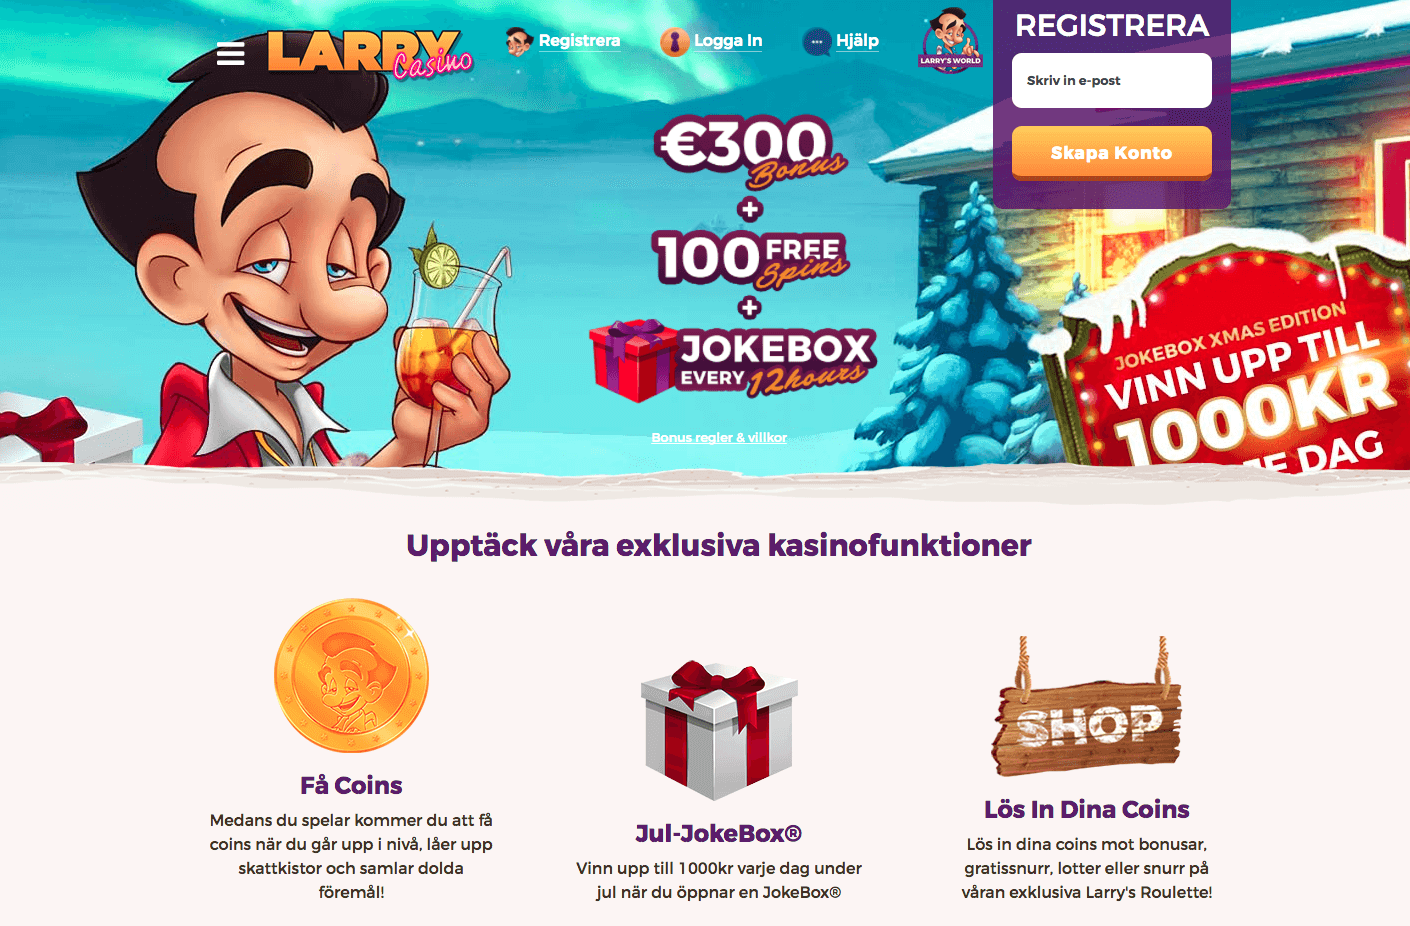 Larry Casinots julkalender